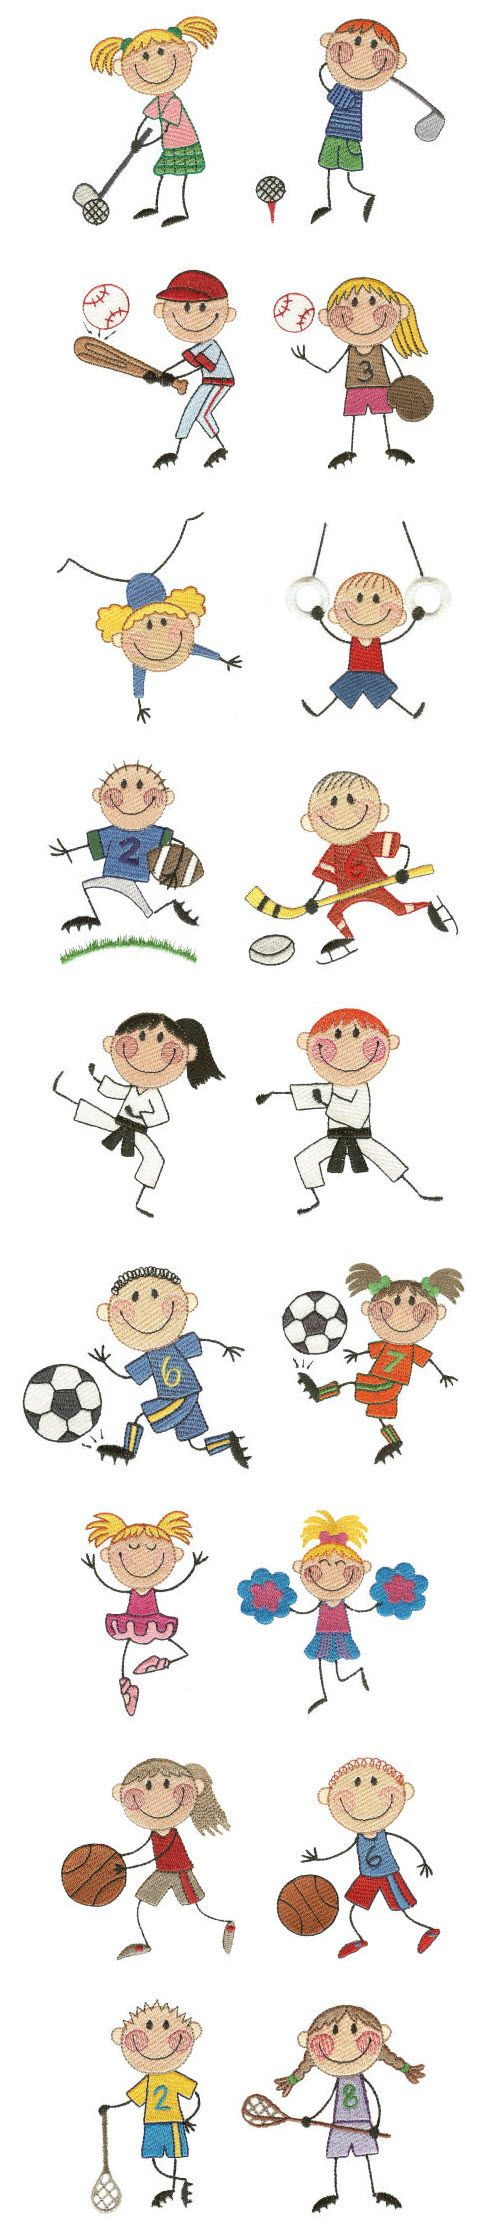 Embroidery | Free Machine Embroidery Designs | The Stix Kids Play Sports